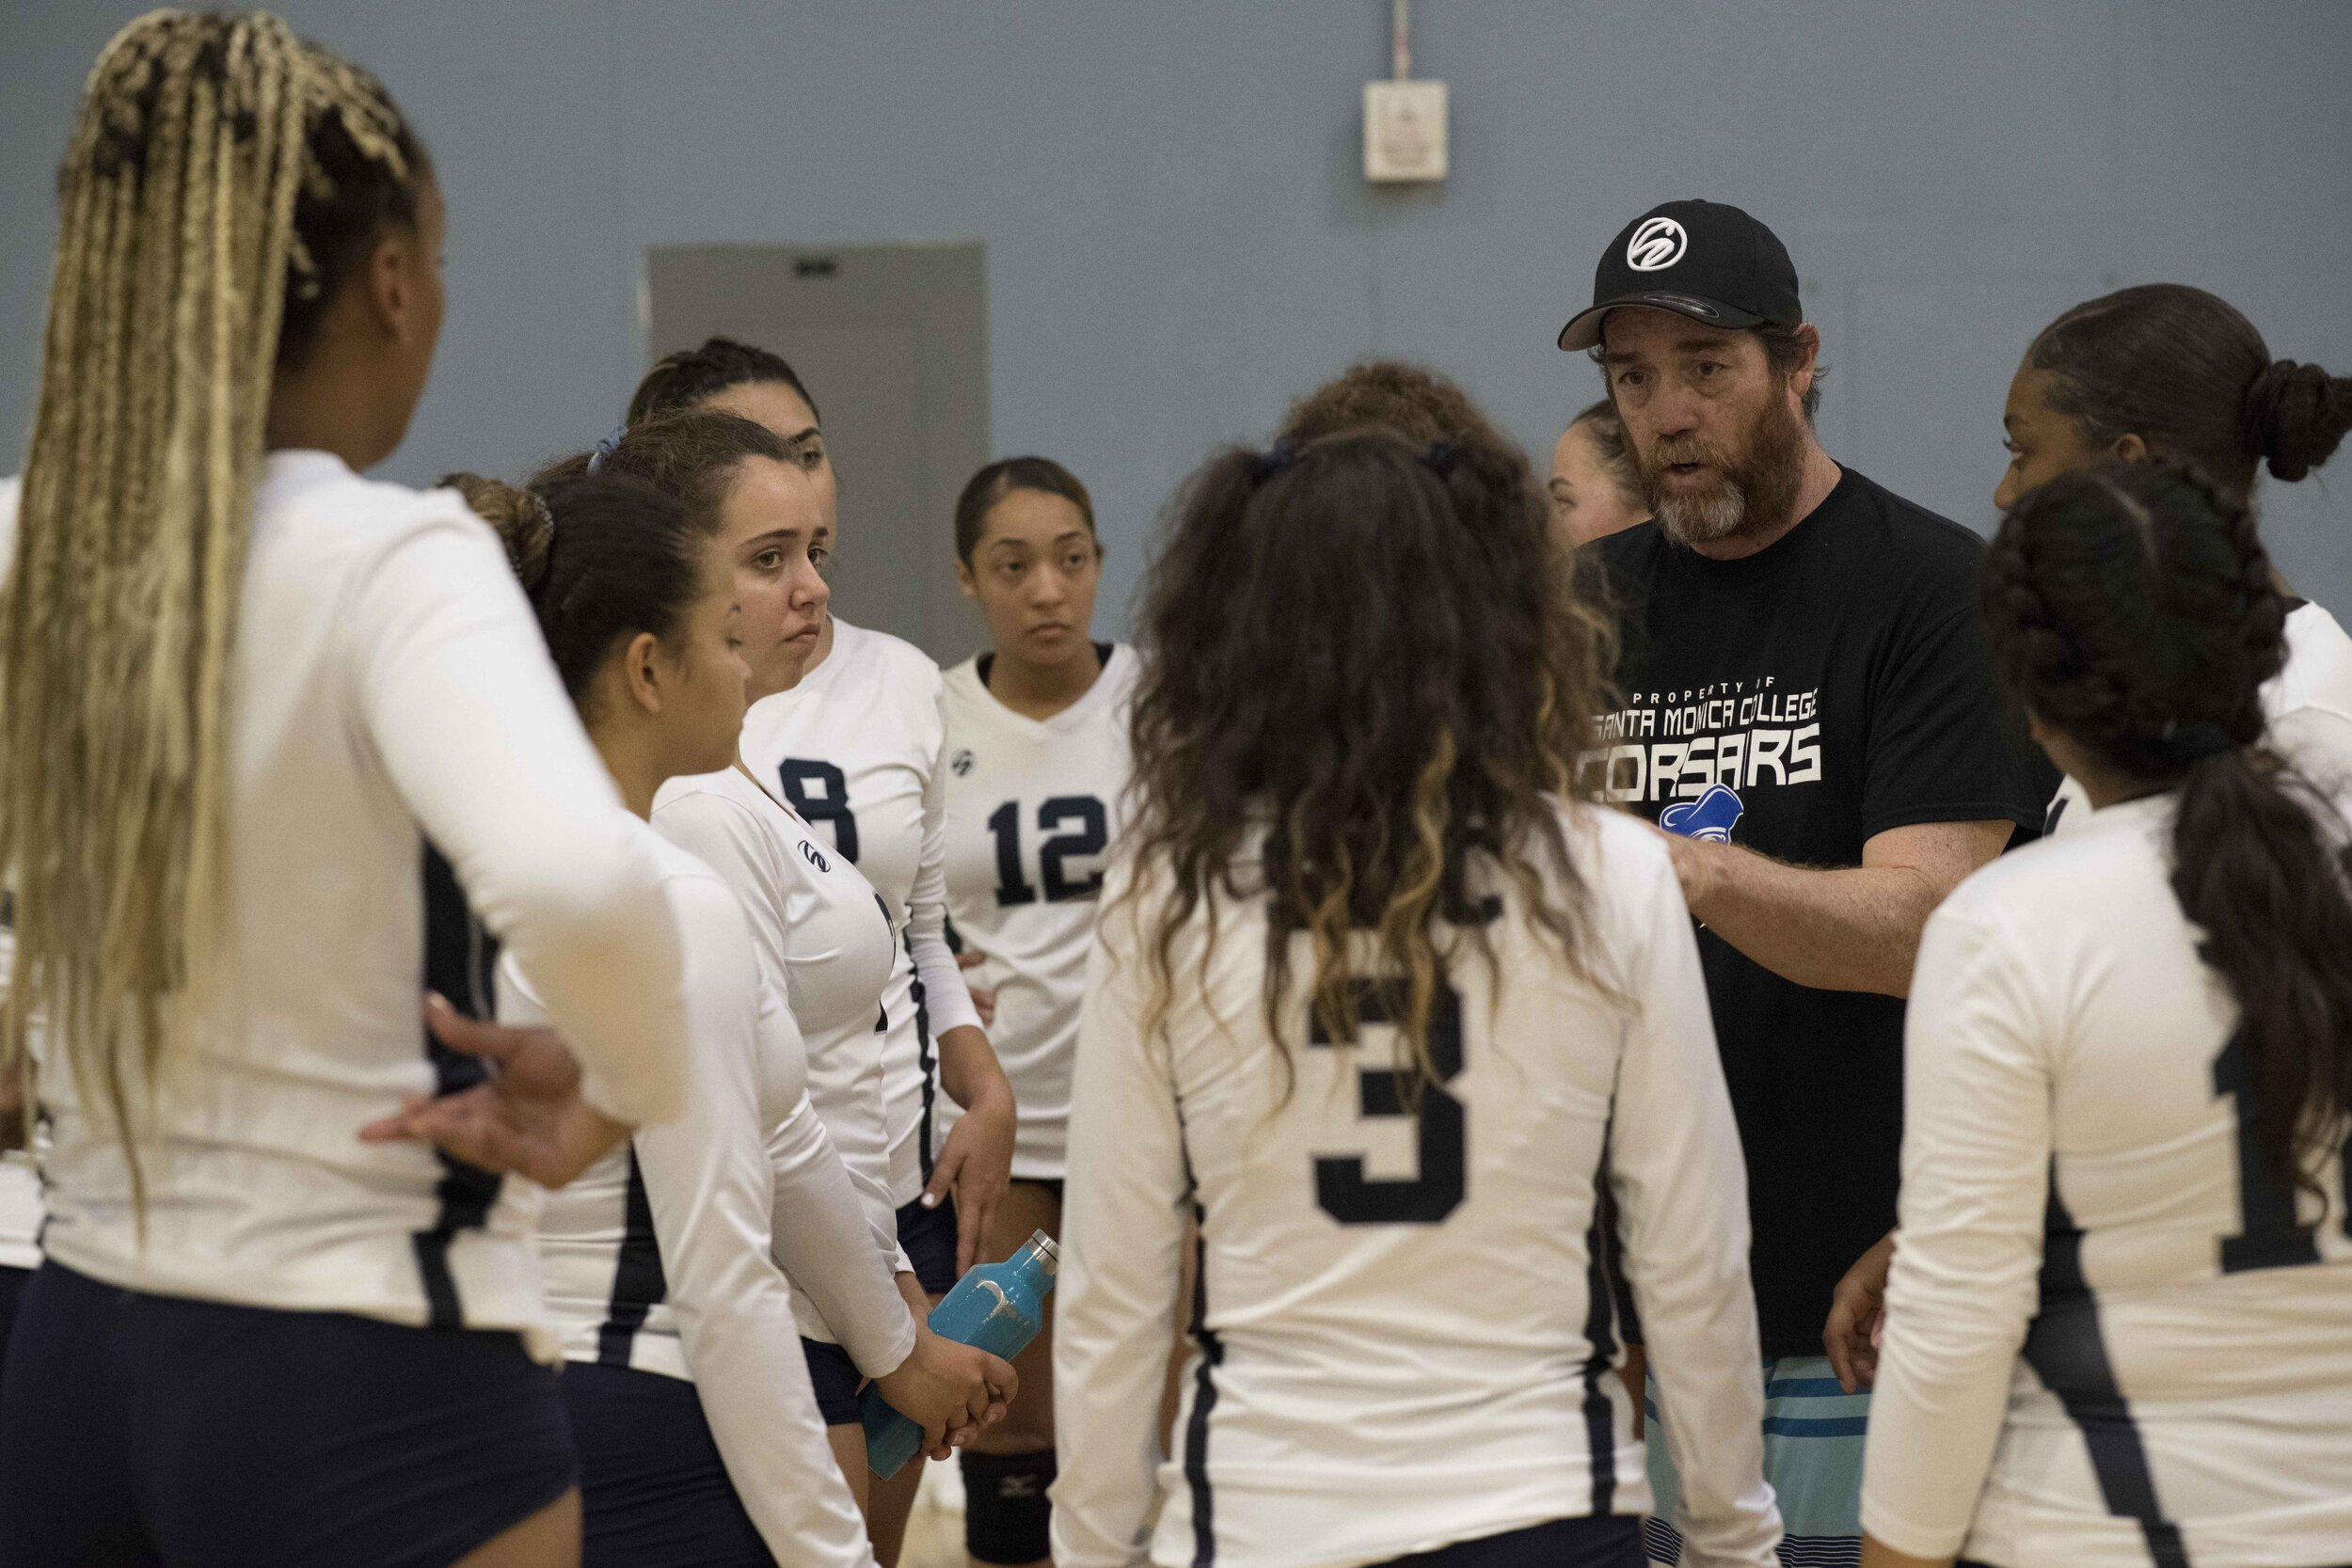 The Corsairs assistant coach taking a moment to talk to the team during a time out. (Photo by Kevin Tidmore/The Corsair)